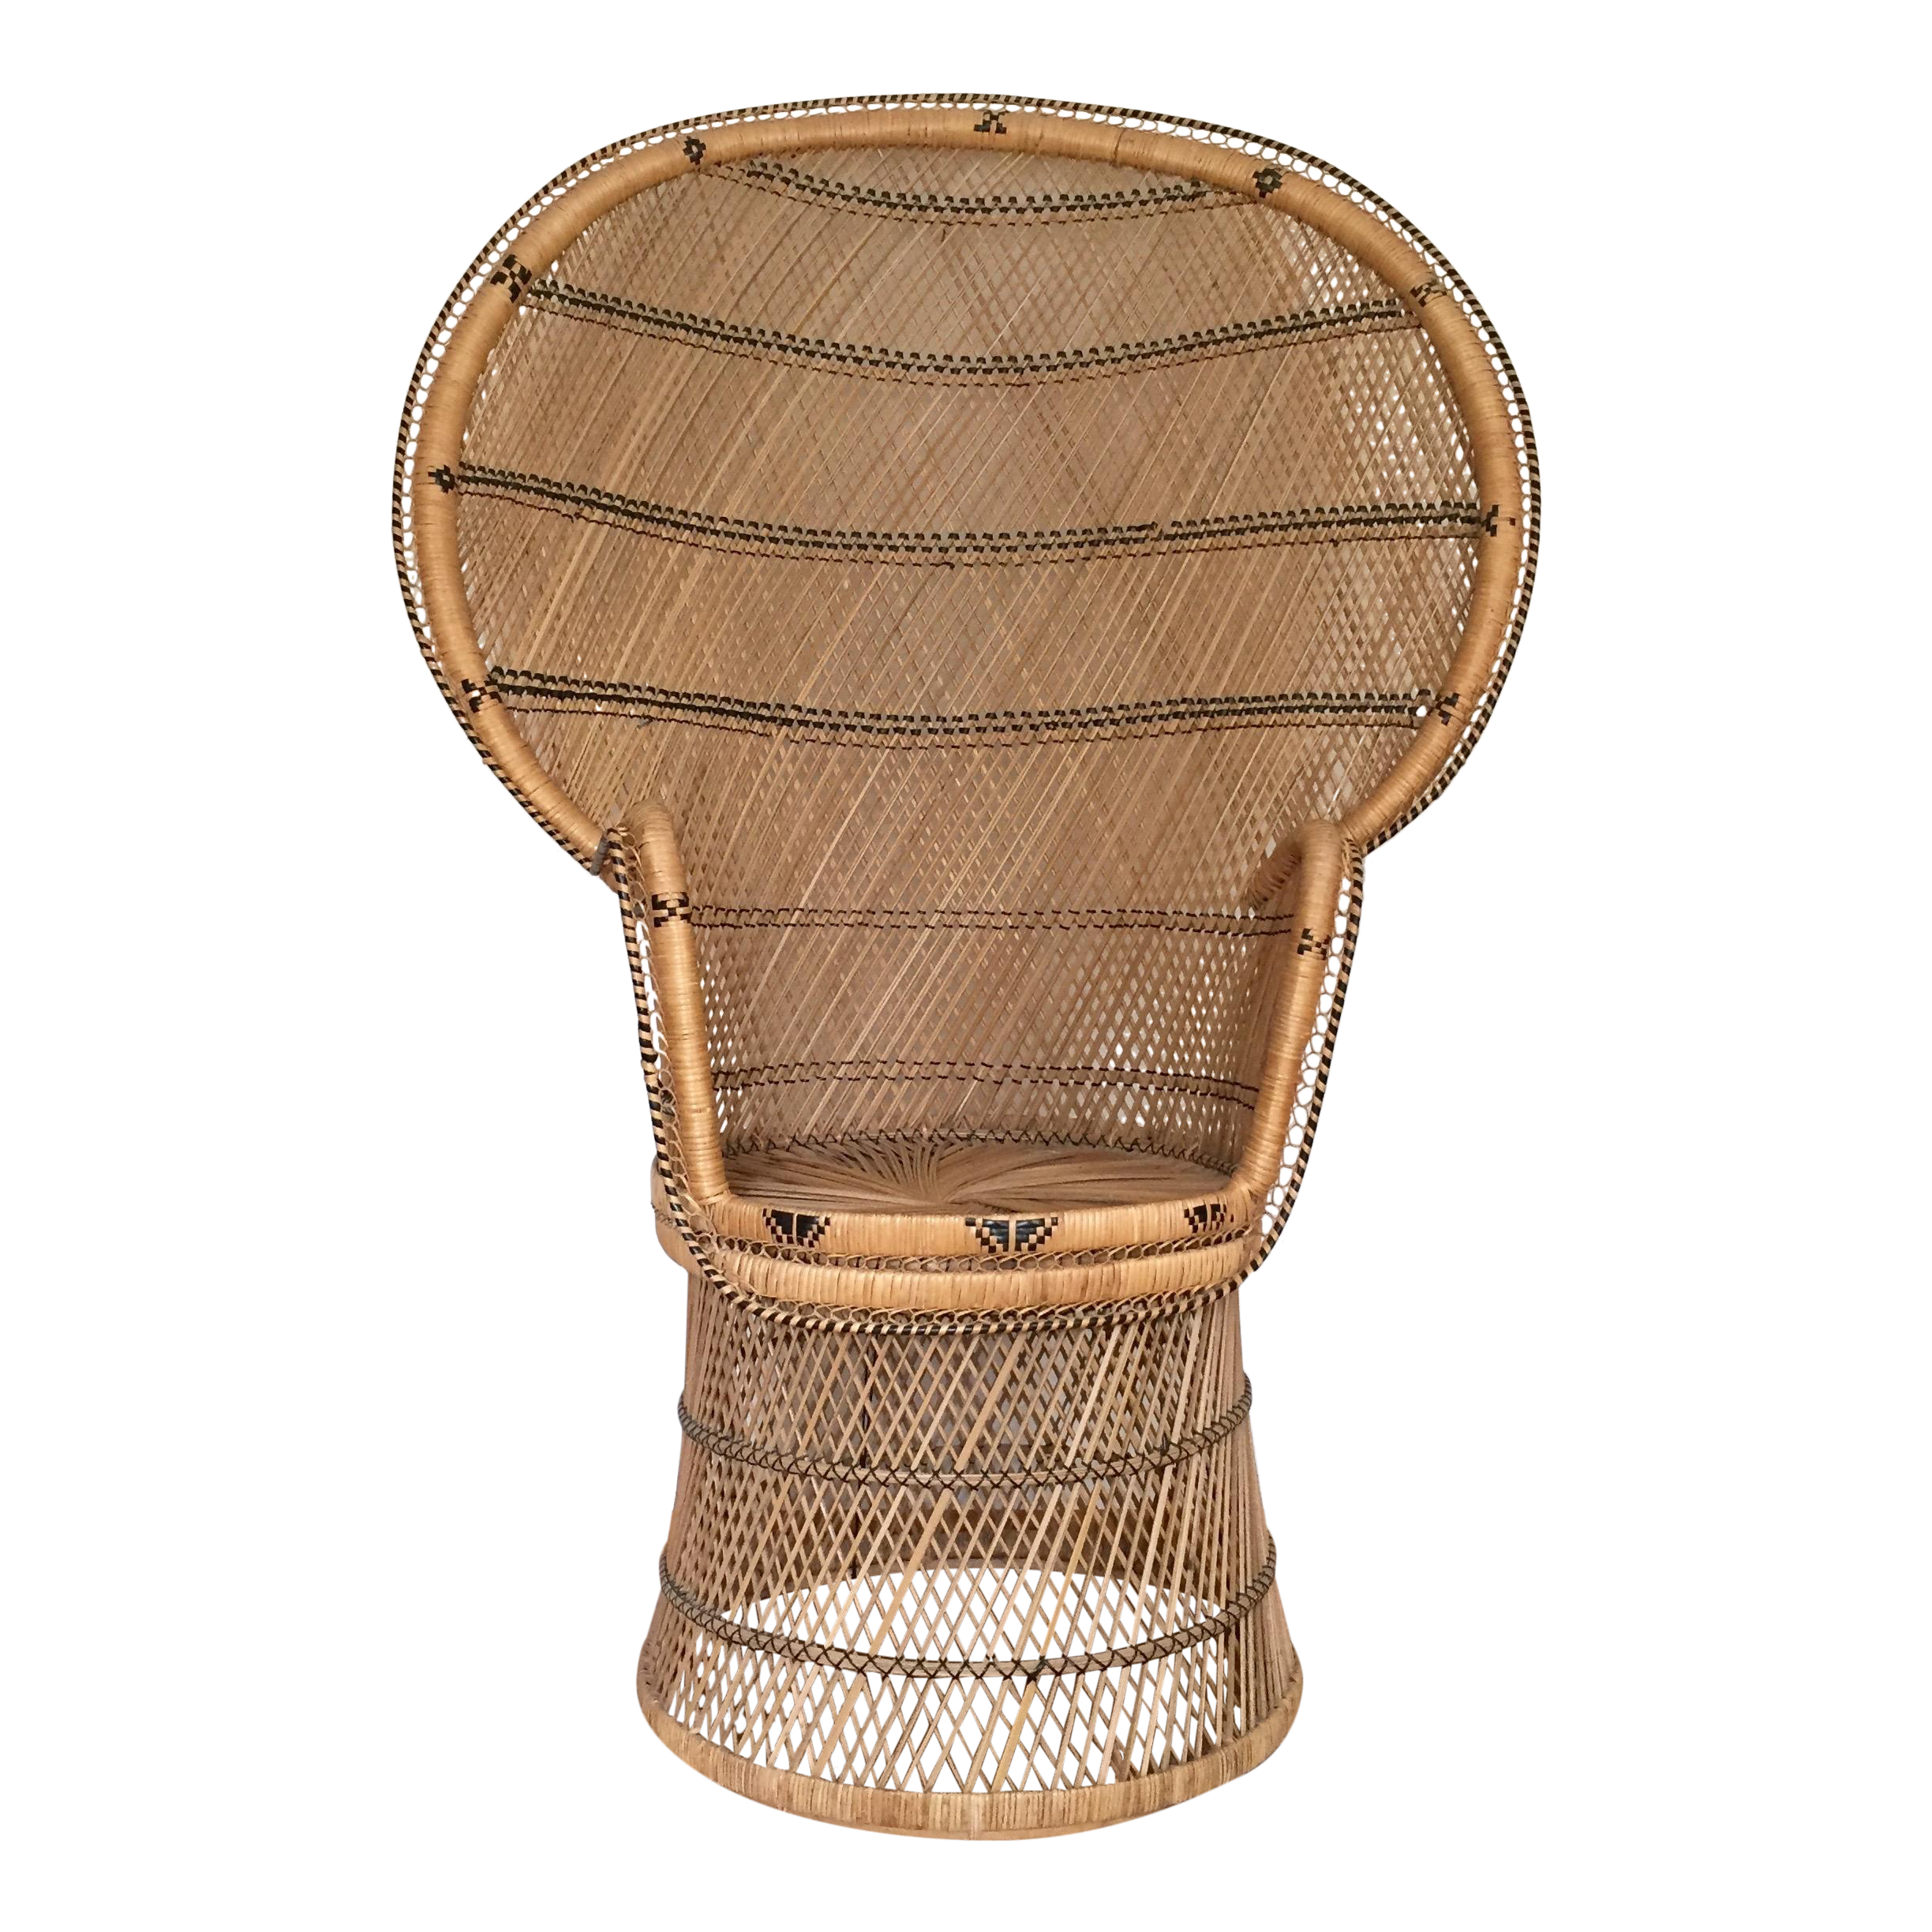 Rattan Wicker Peacock Chair with Black Accents on Chairish